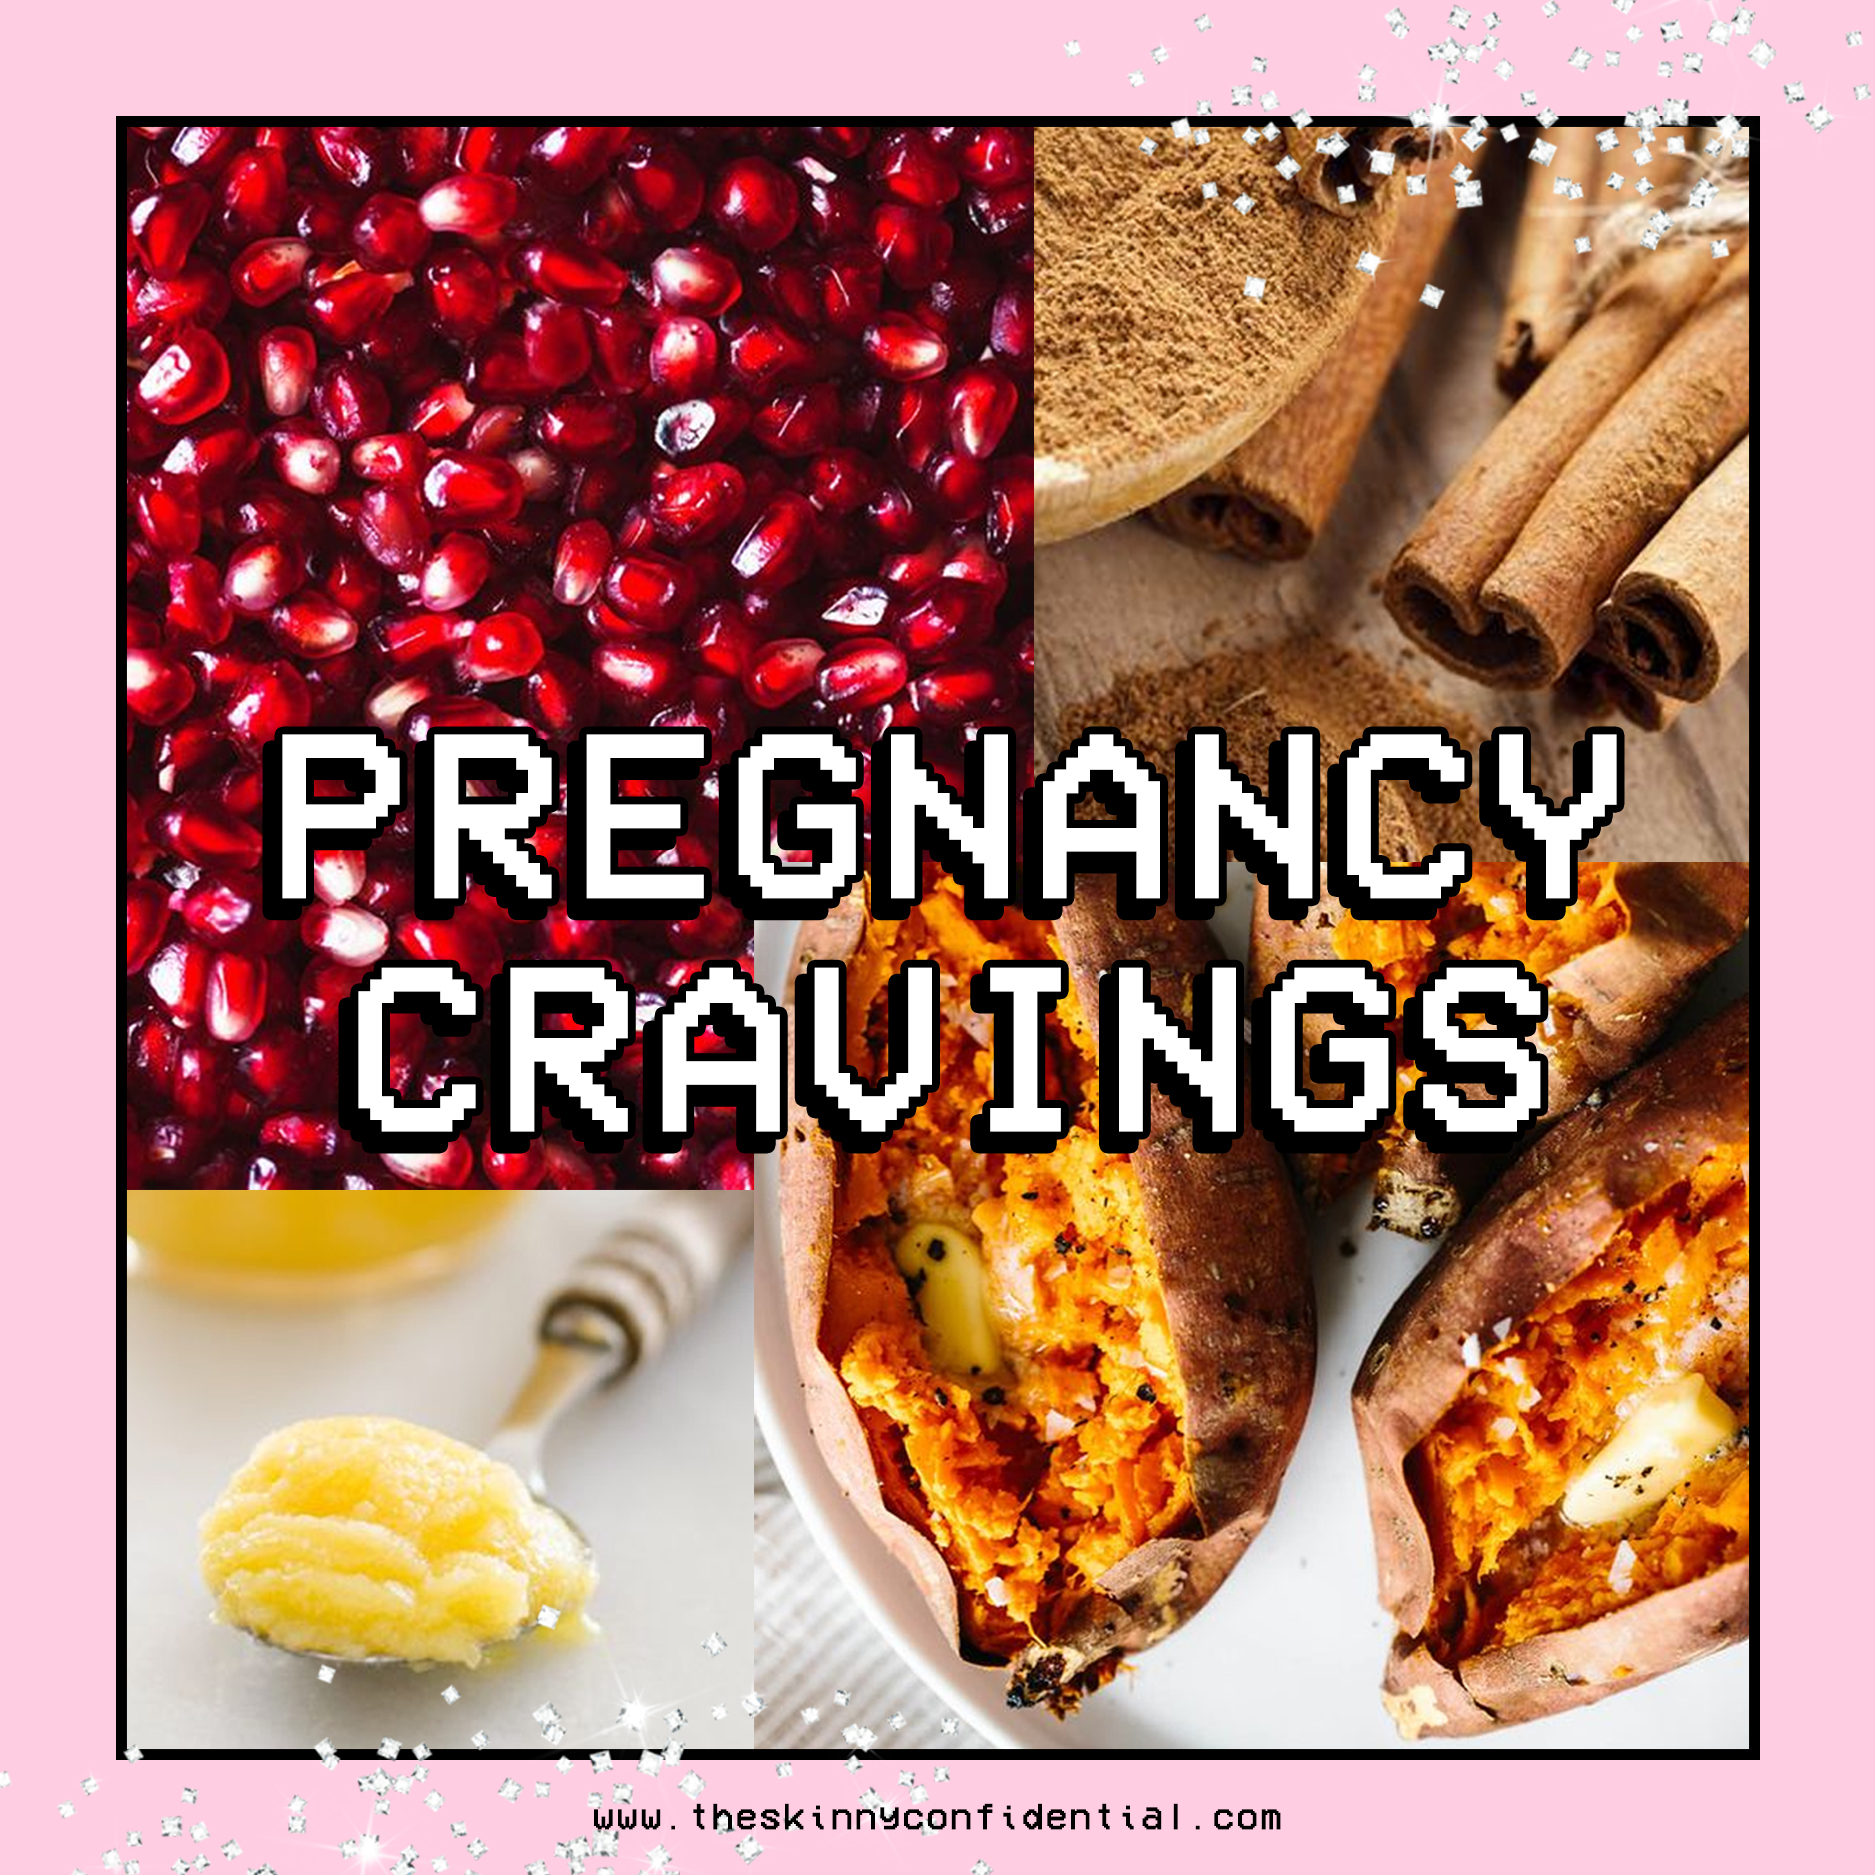 The Pregnancy Craving Everyone Needs to Try